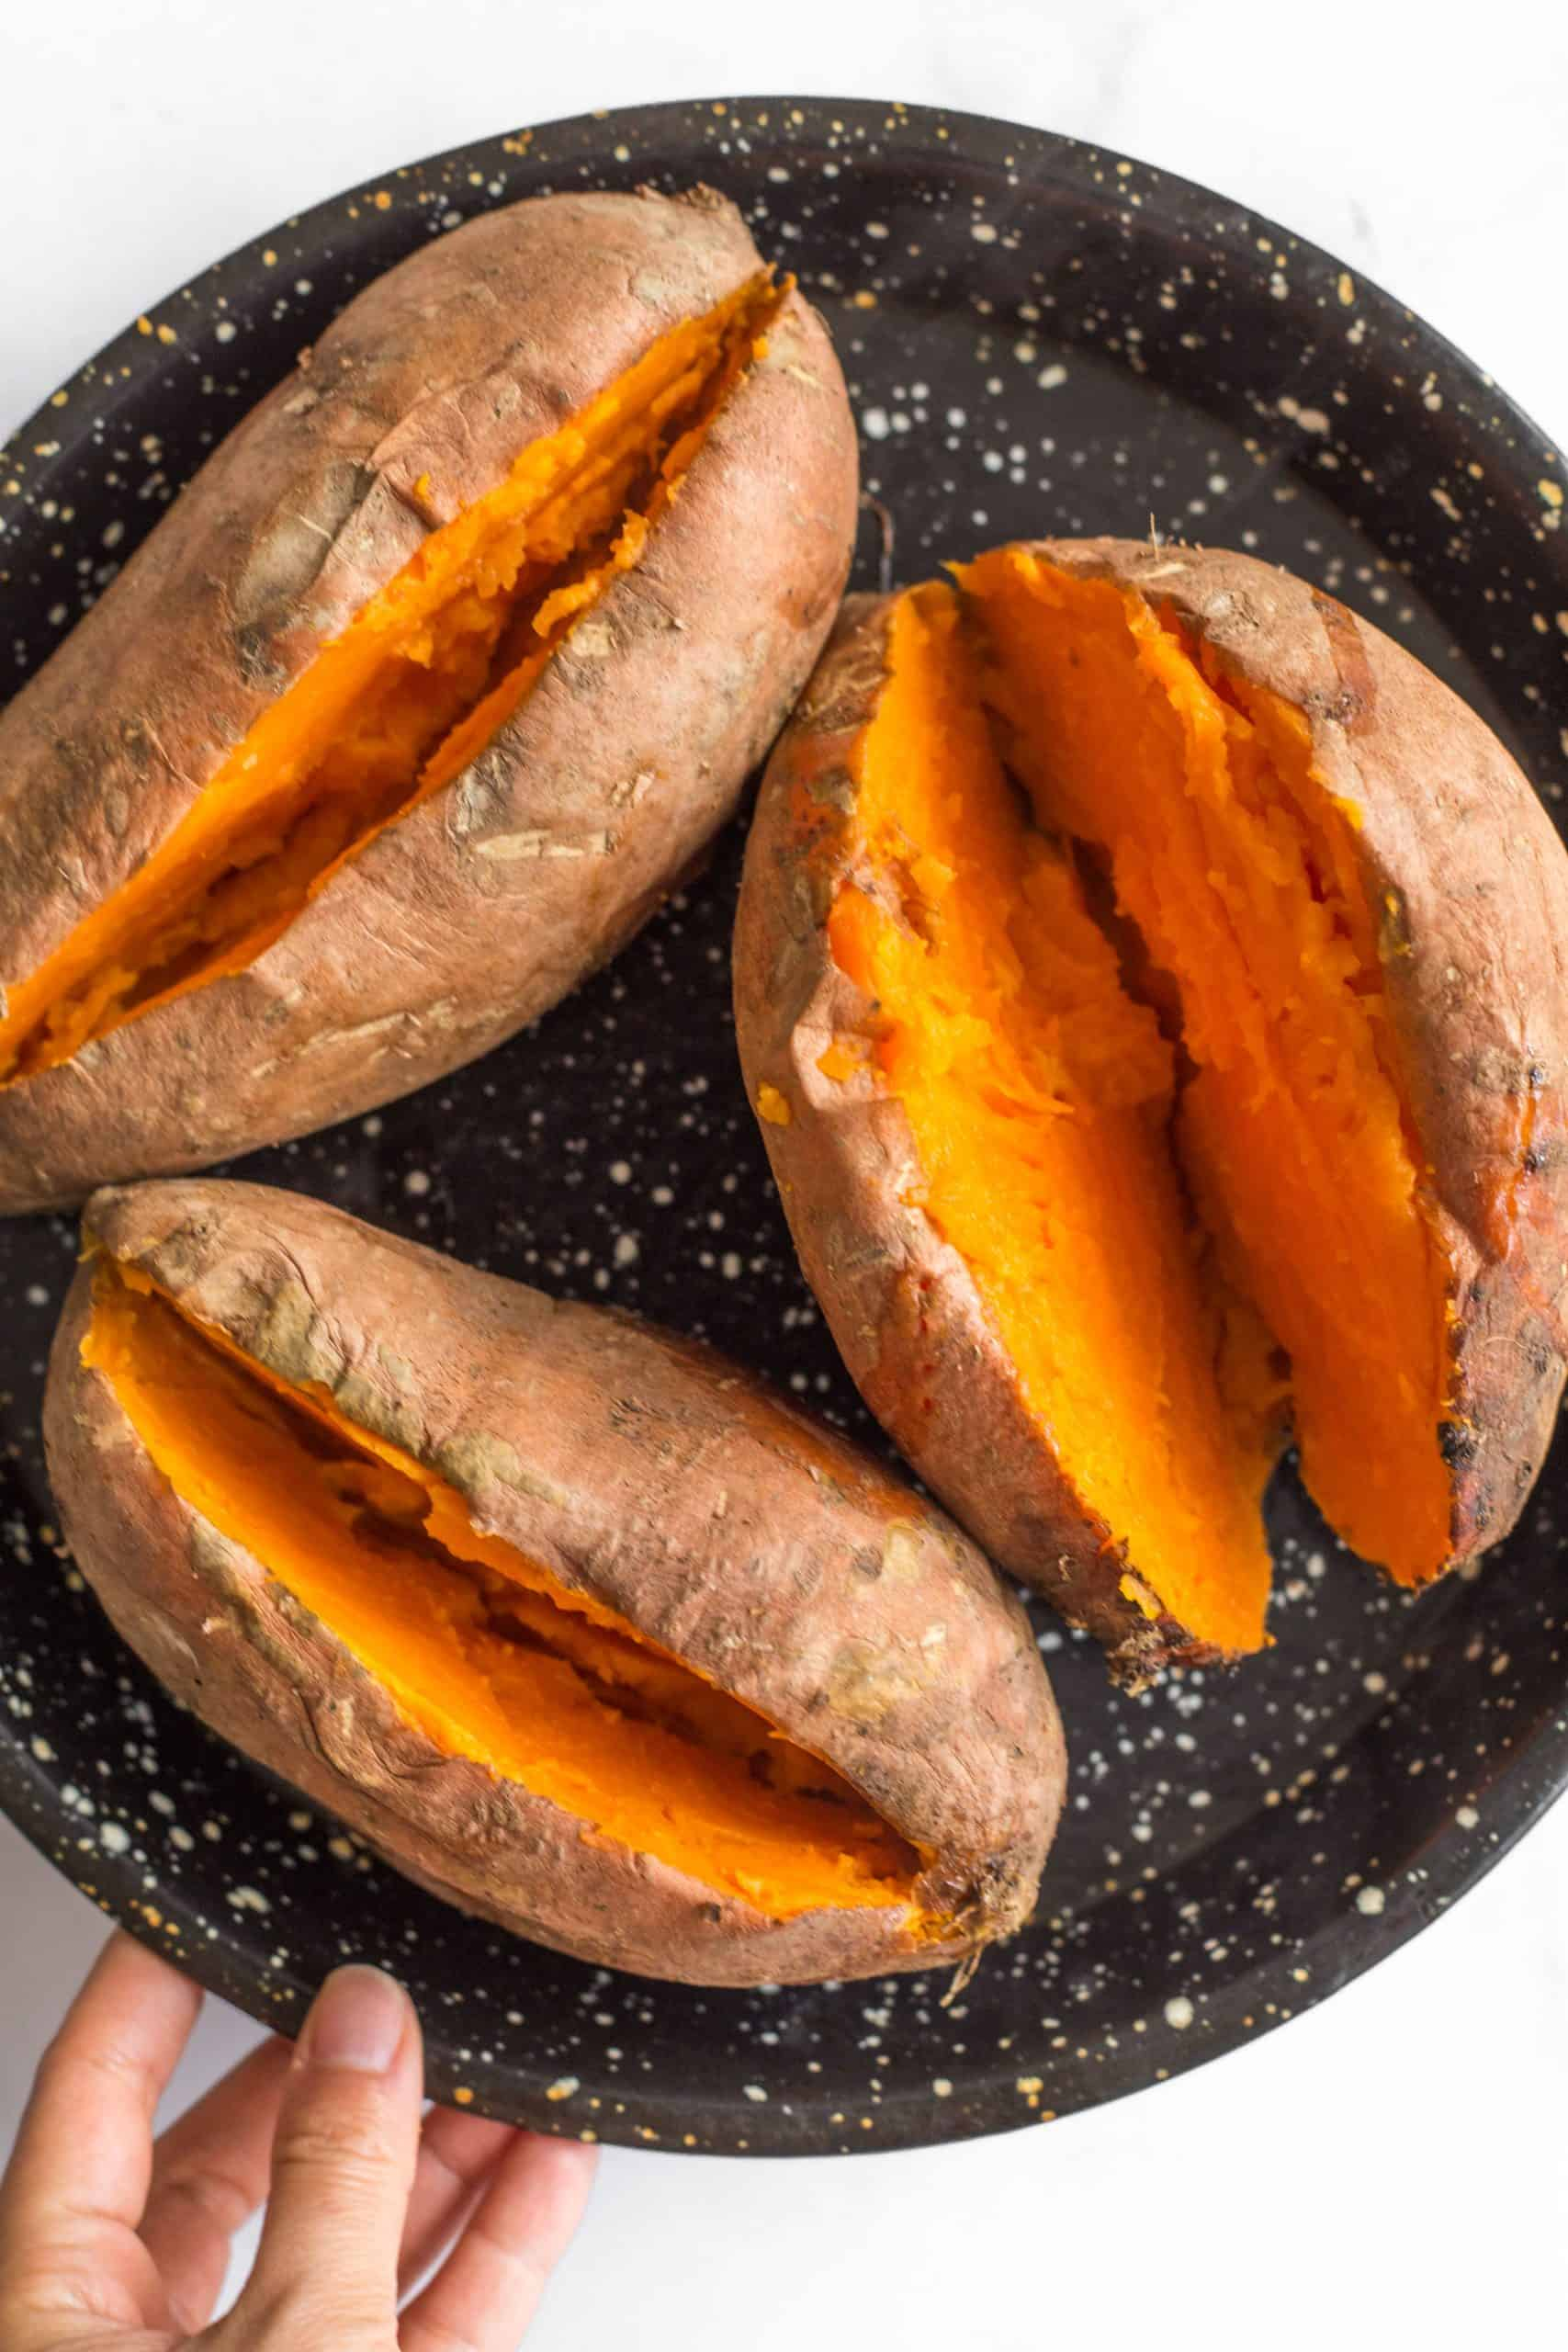 Baked sweet potatoes sliced into half lengthwise.